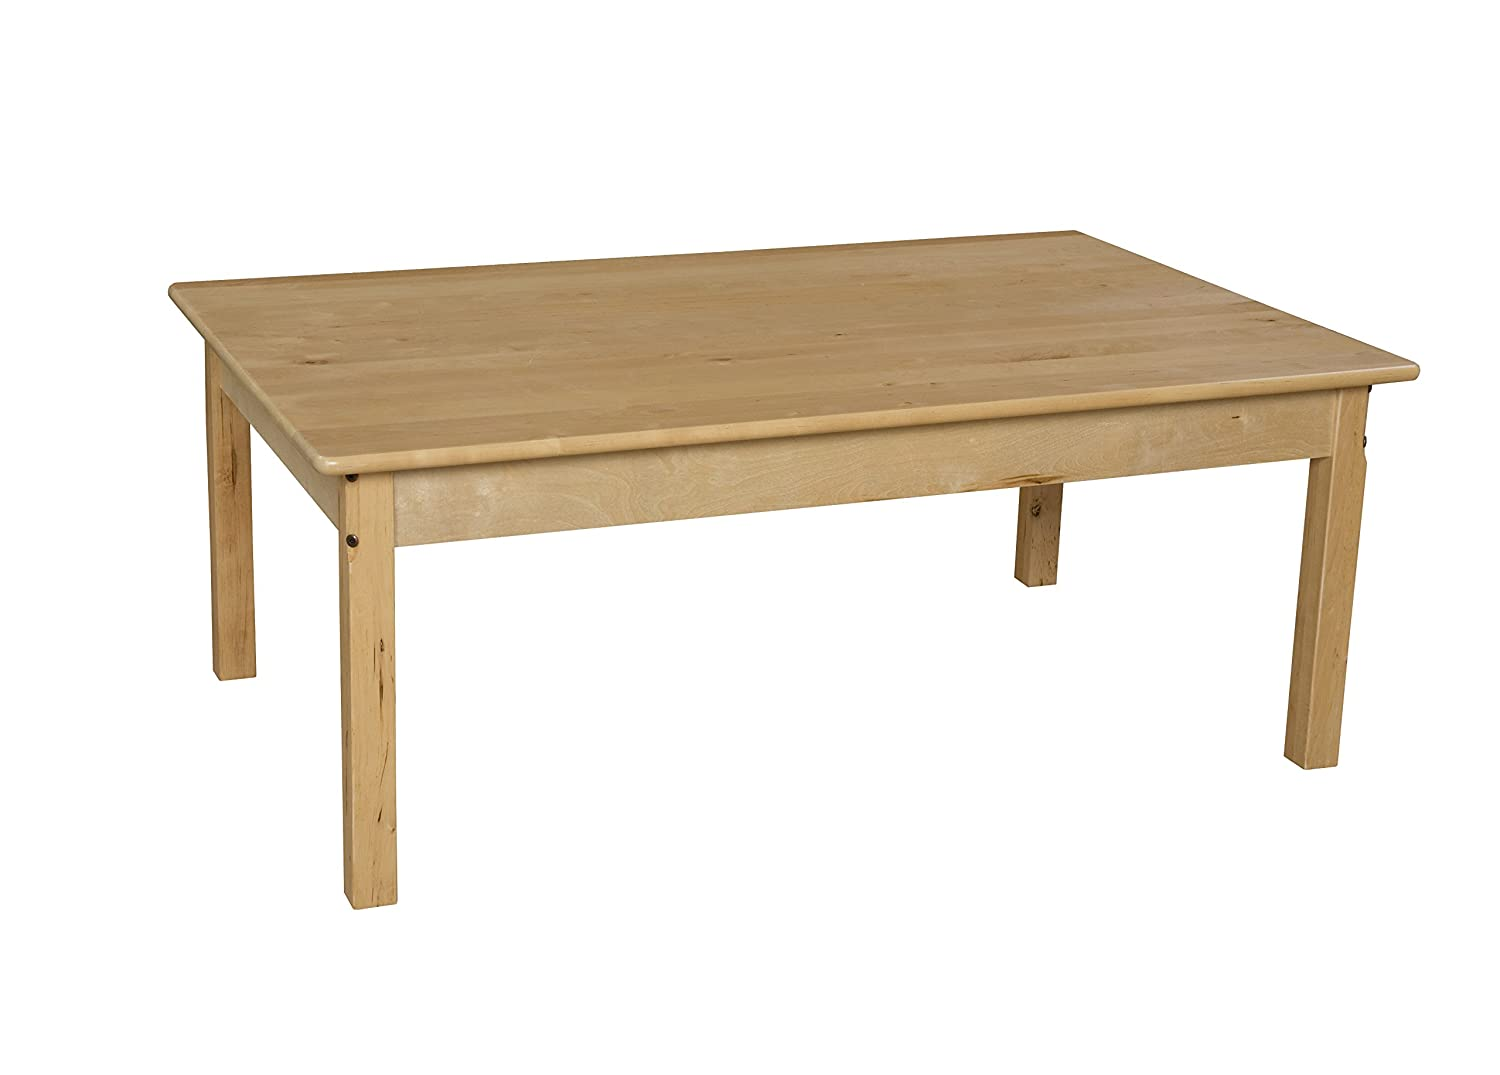 Wood Designs Wd83420 Child 39 S Table 30 X 48 Rectangle